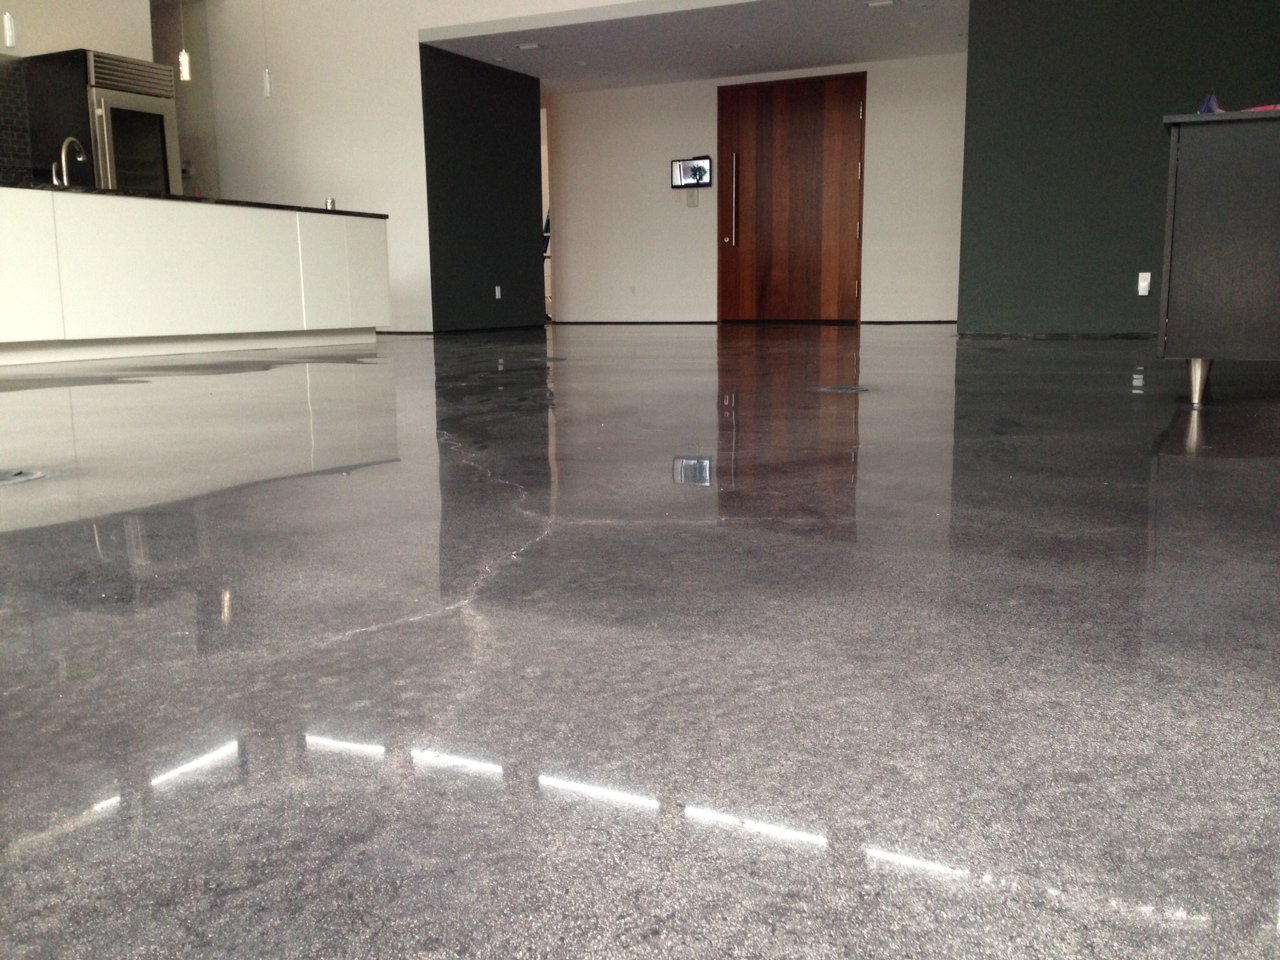 This May Be A Very Simple Upgrade But It Can Transform Plain Concrete Into Shiny And Stunning Floors The Existing Floor Is Ground To Smooth Finish